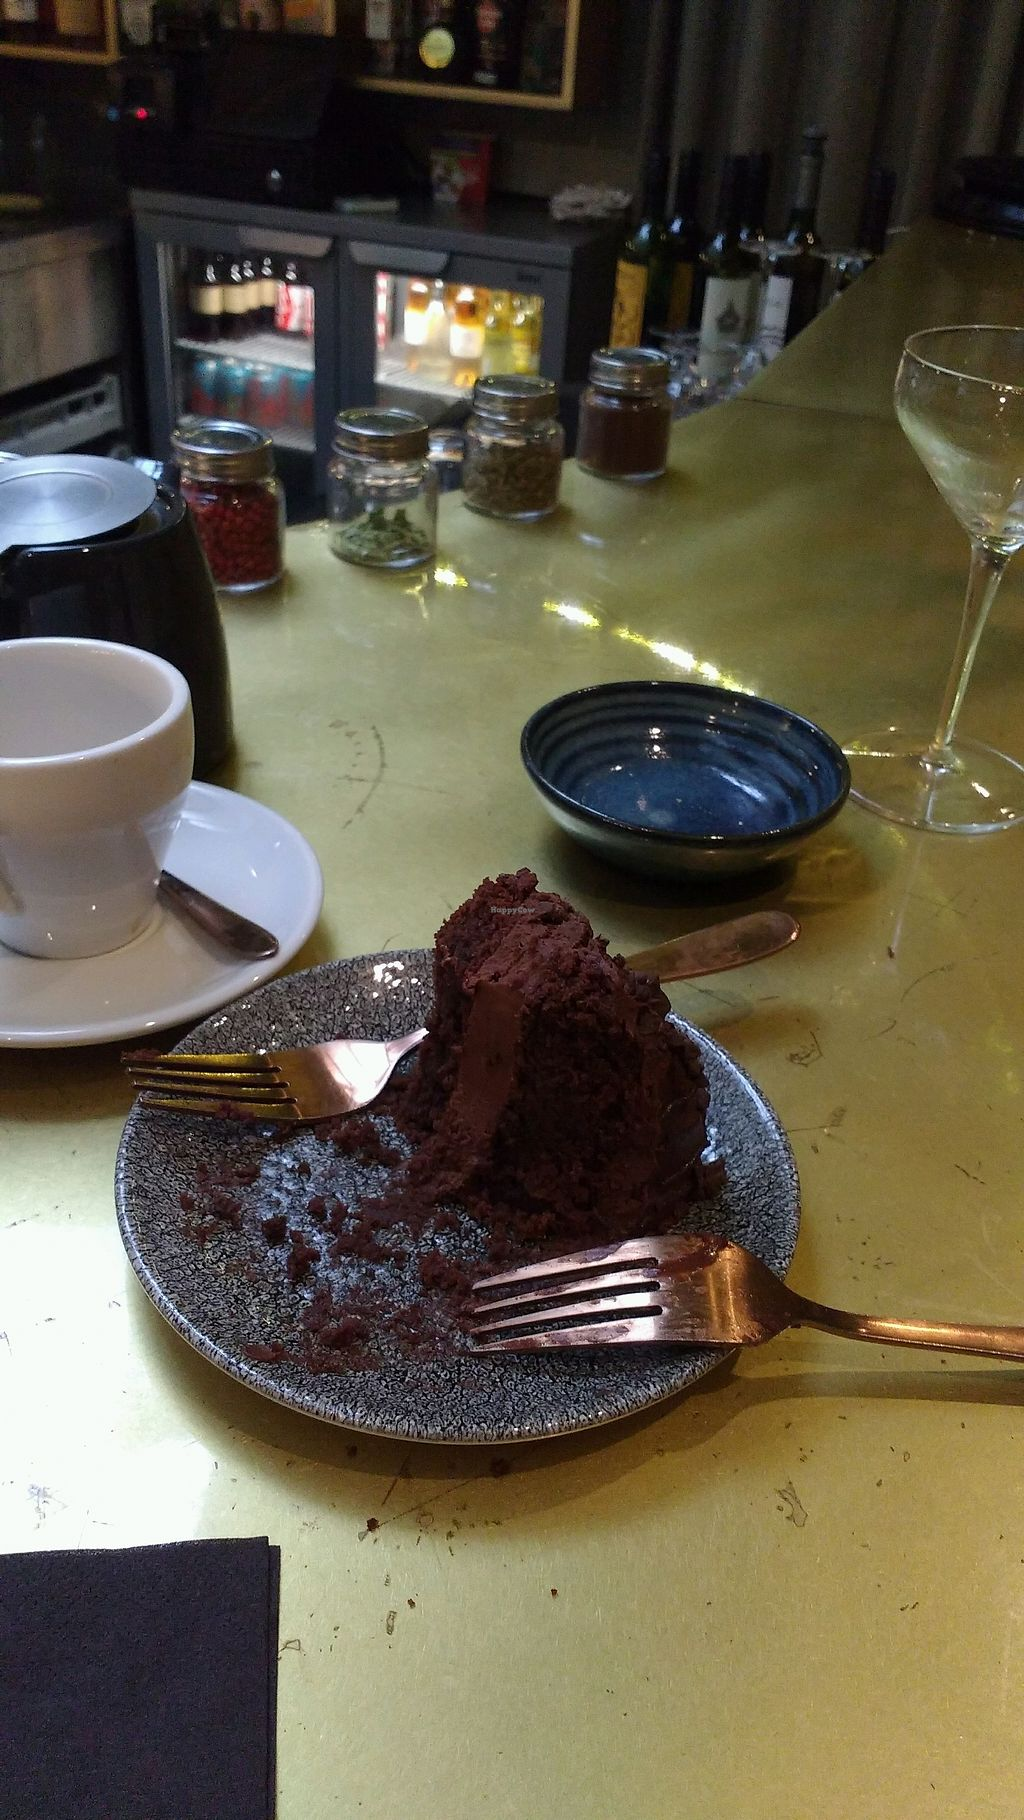 """Photo of Boki  by <a href=""""/members/profile/fosstuff"""">fosstuff</a> <br/>Chocolate cake <br/> March 30, 2018  - <a href='/contact/abuse/image/114572/378287'>Report</a>"""